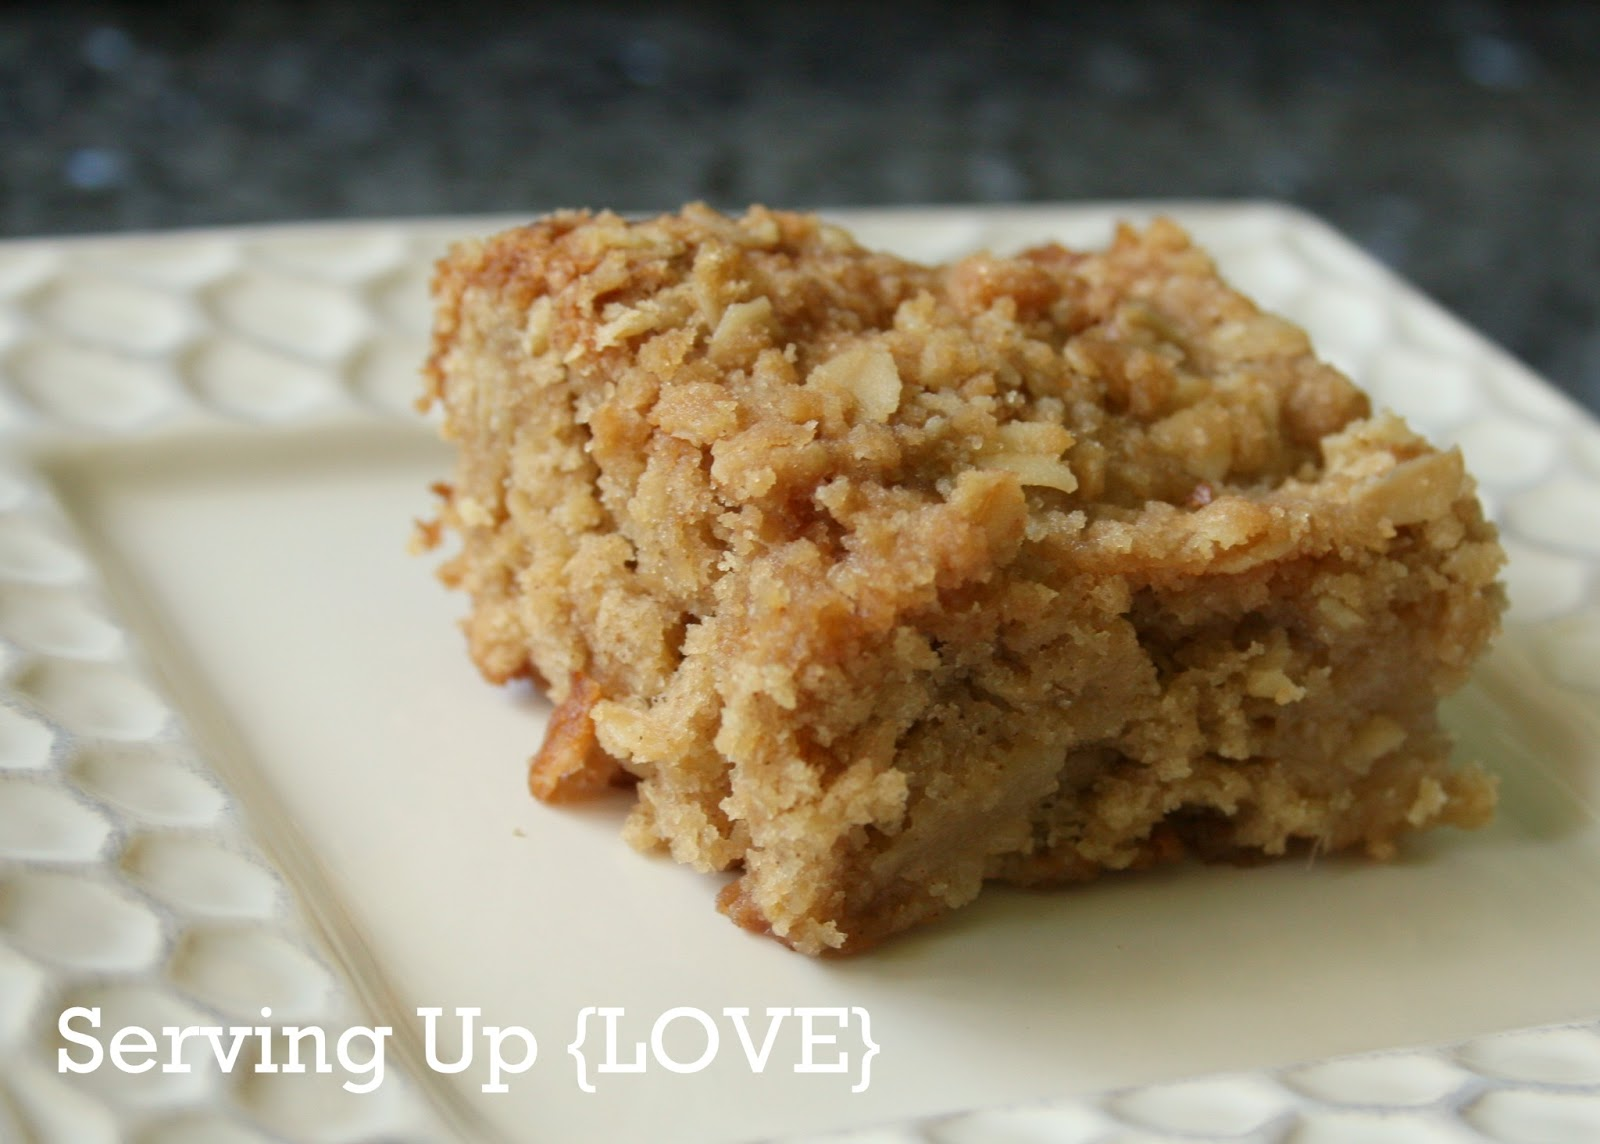 Katherine's Kitchen: Serving Up {Cake}: Spiced Oat Pear Blondies